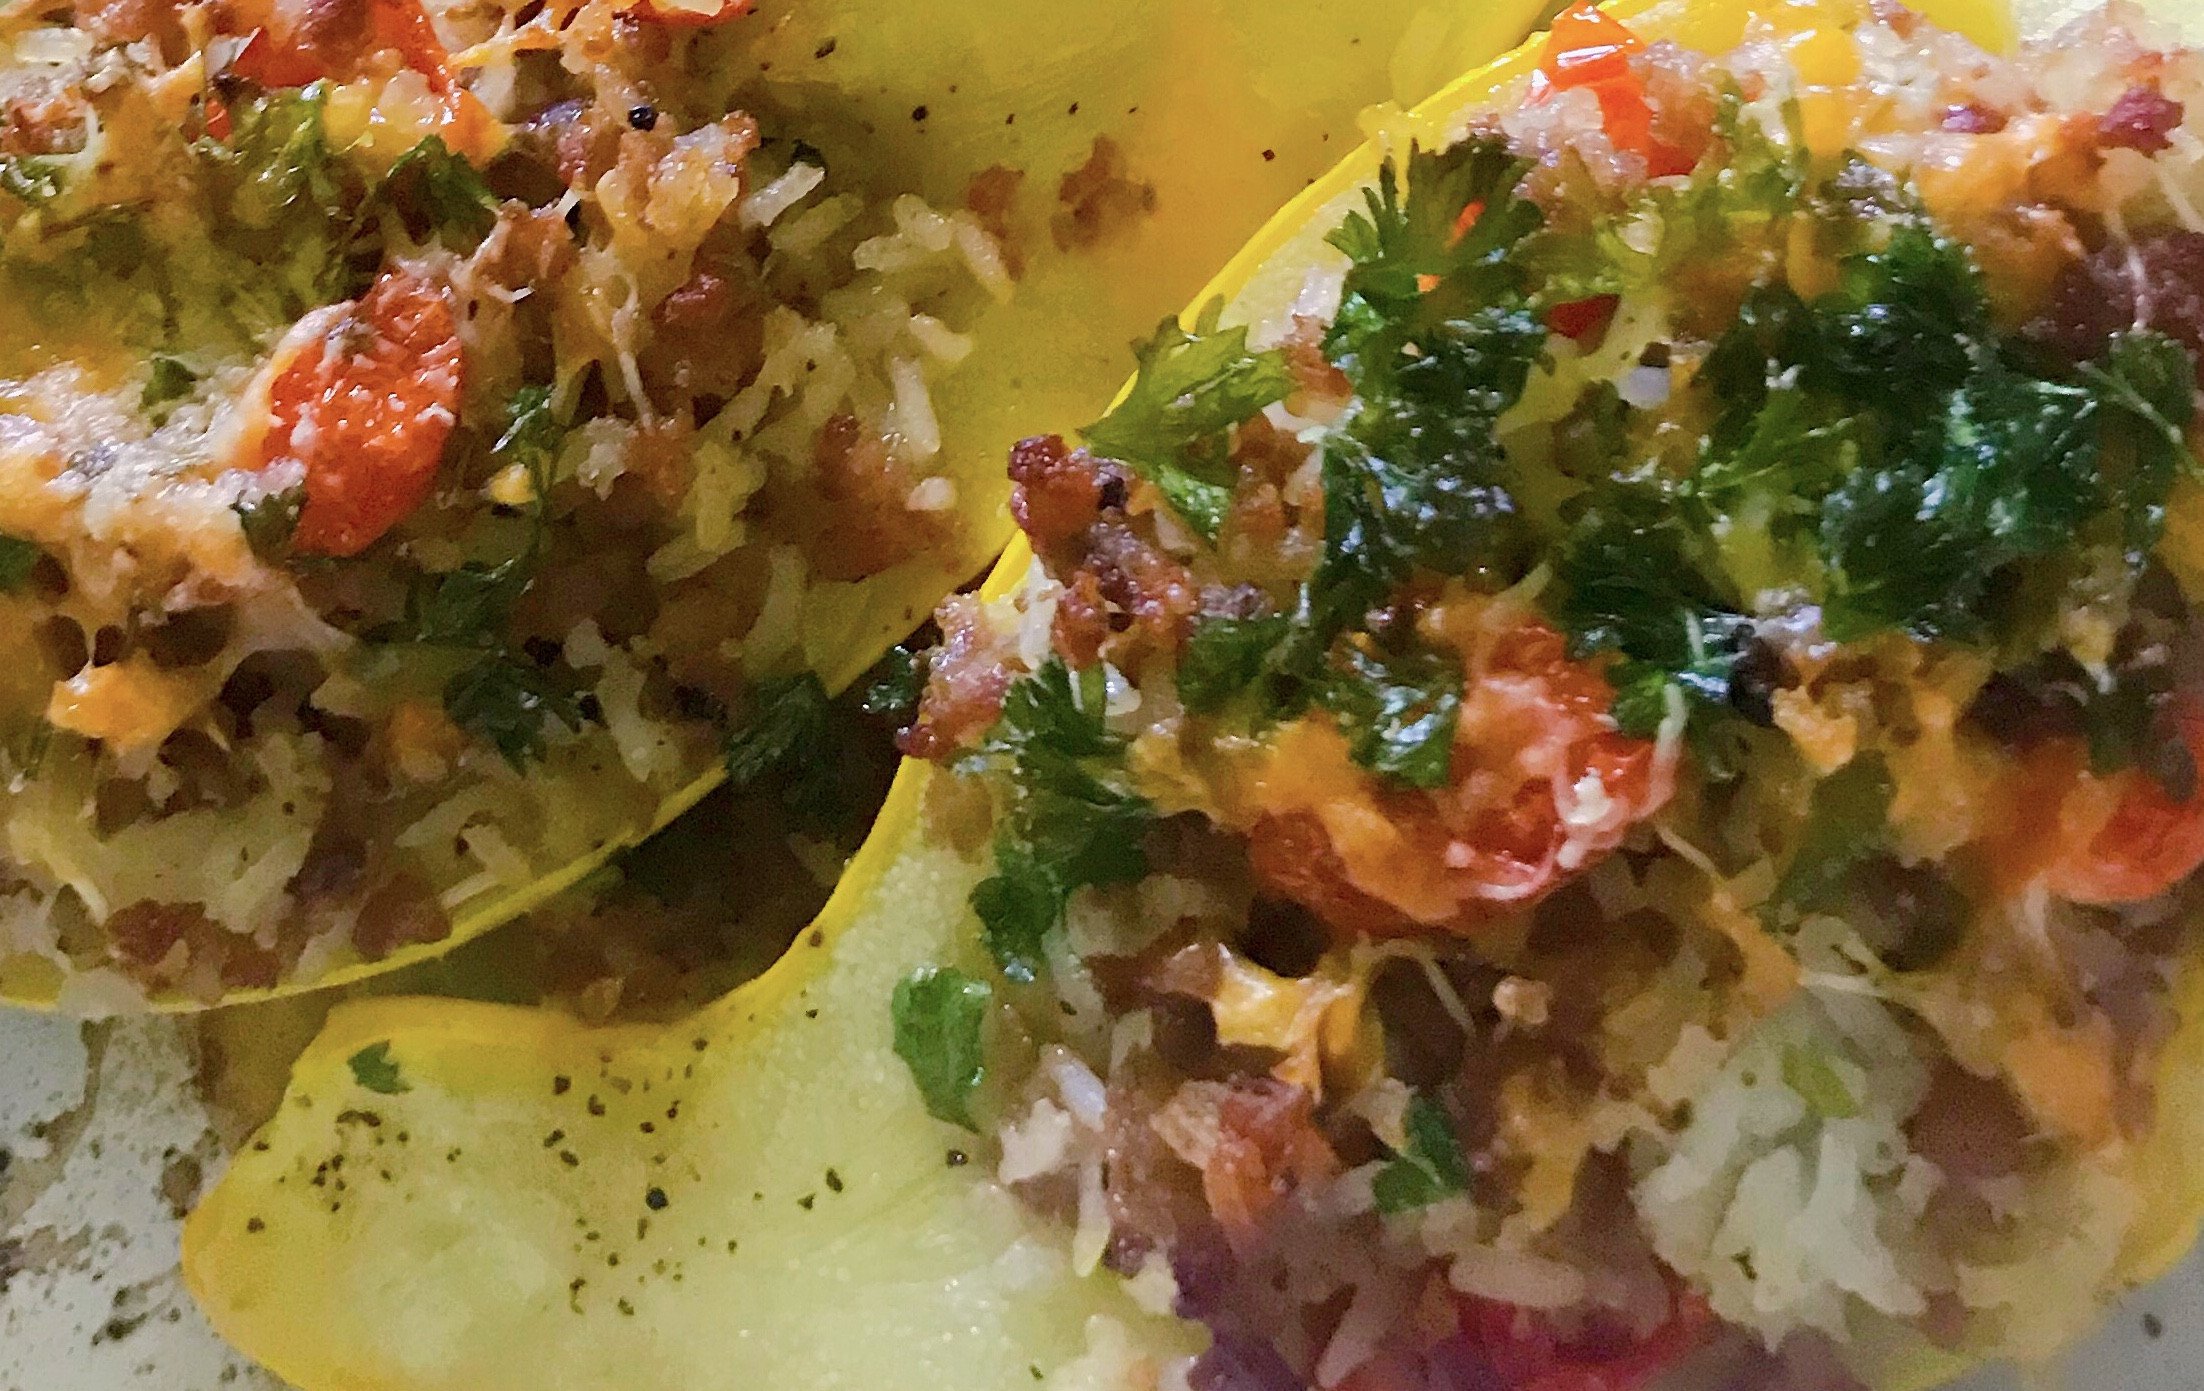 Sandra's stuffed summer squash